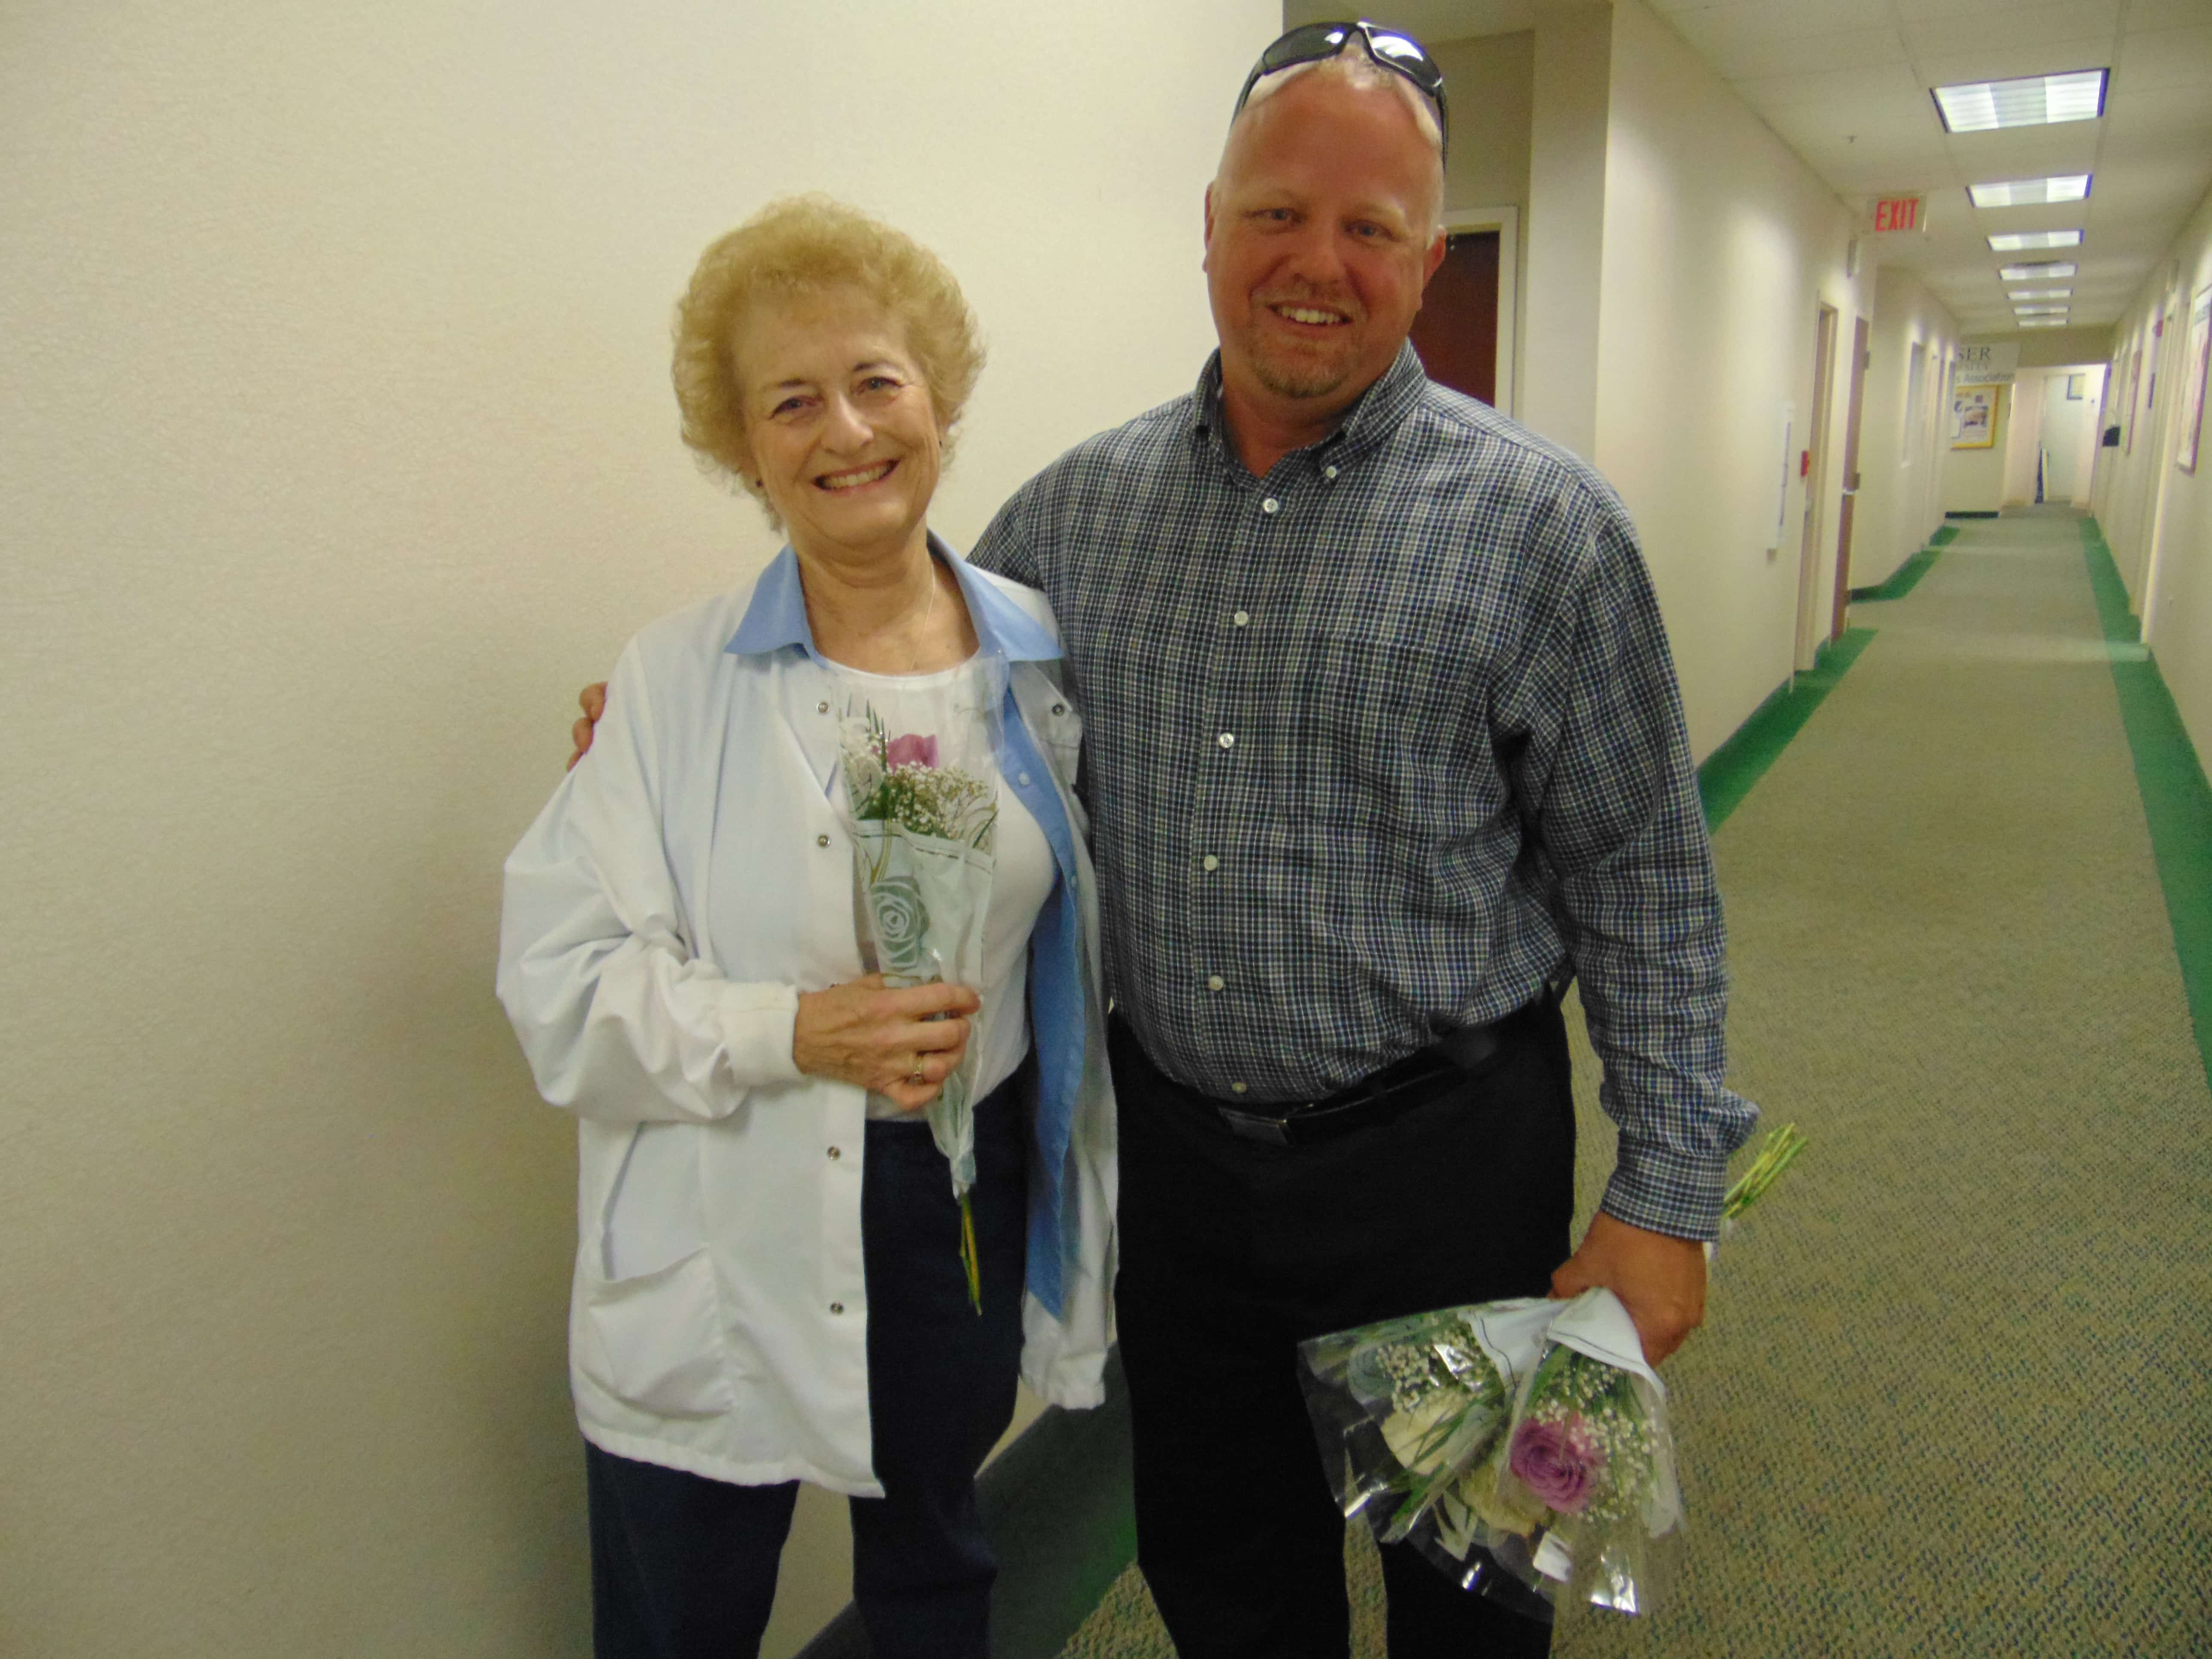 Sarasota Nursing Graduate Says THANK YOU